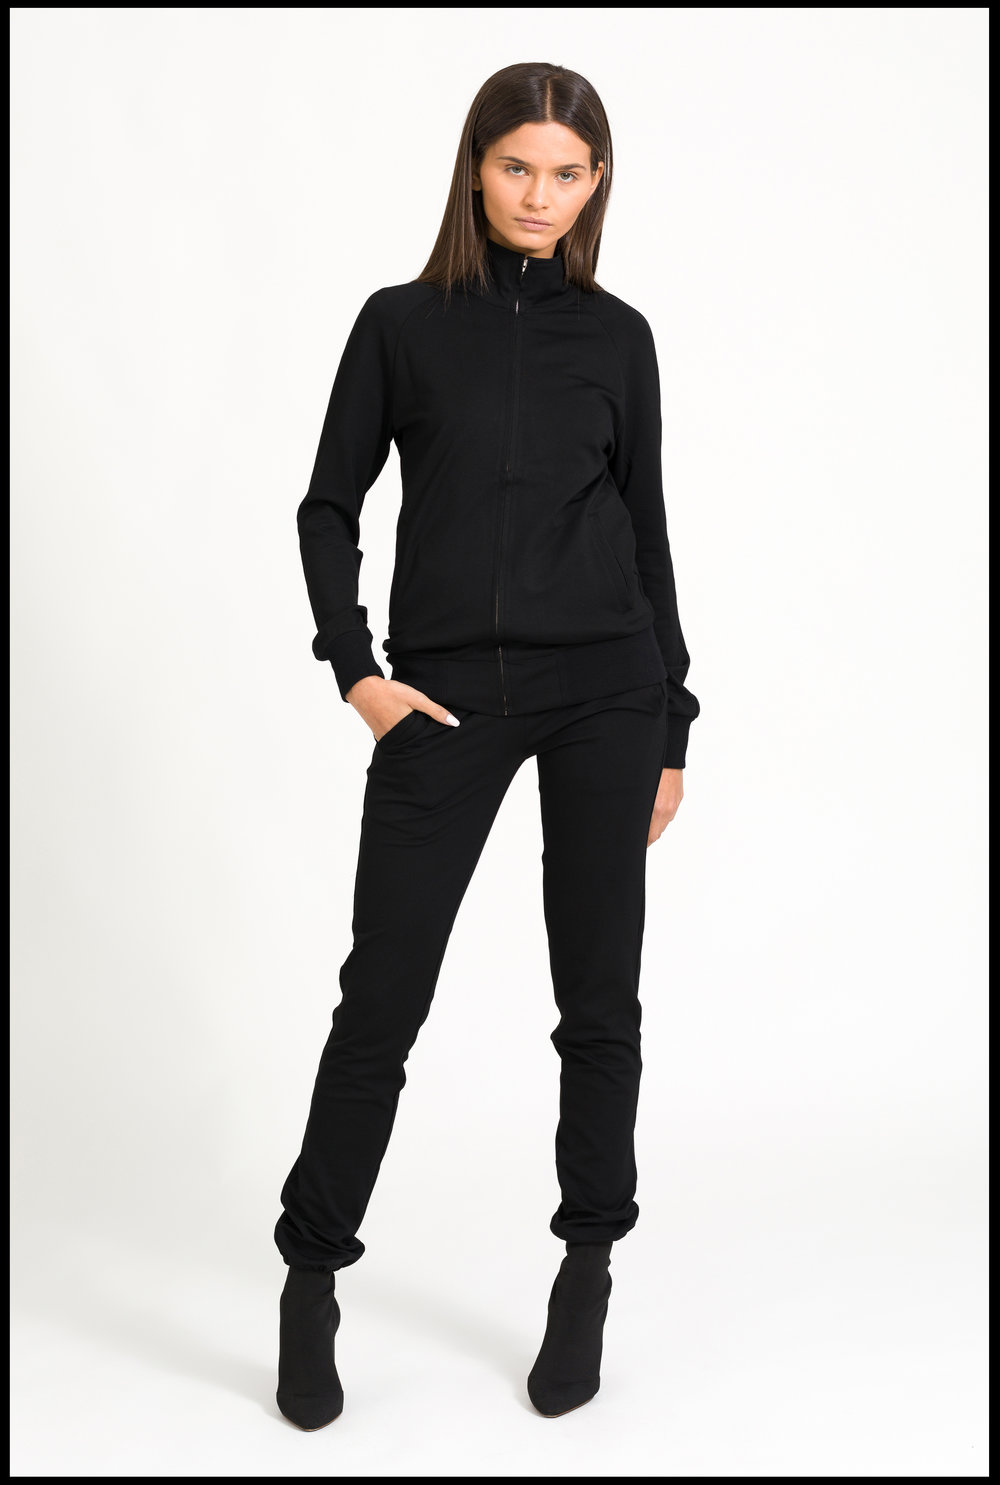 the tracksuit in black.jpg